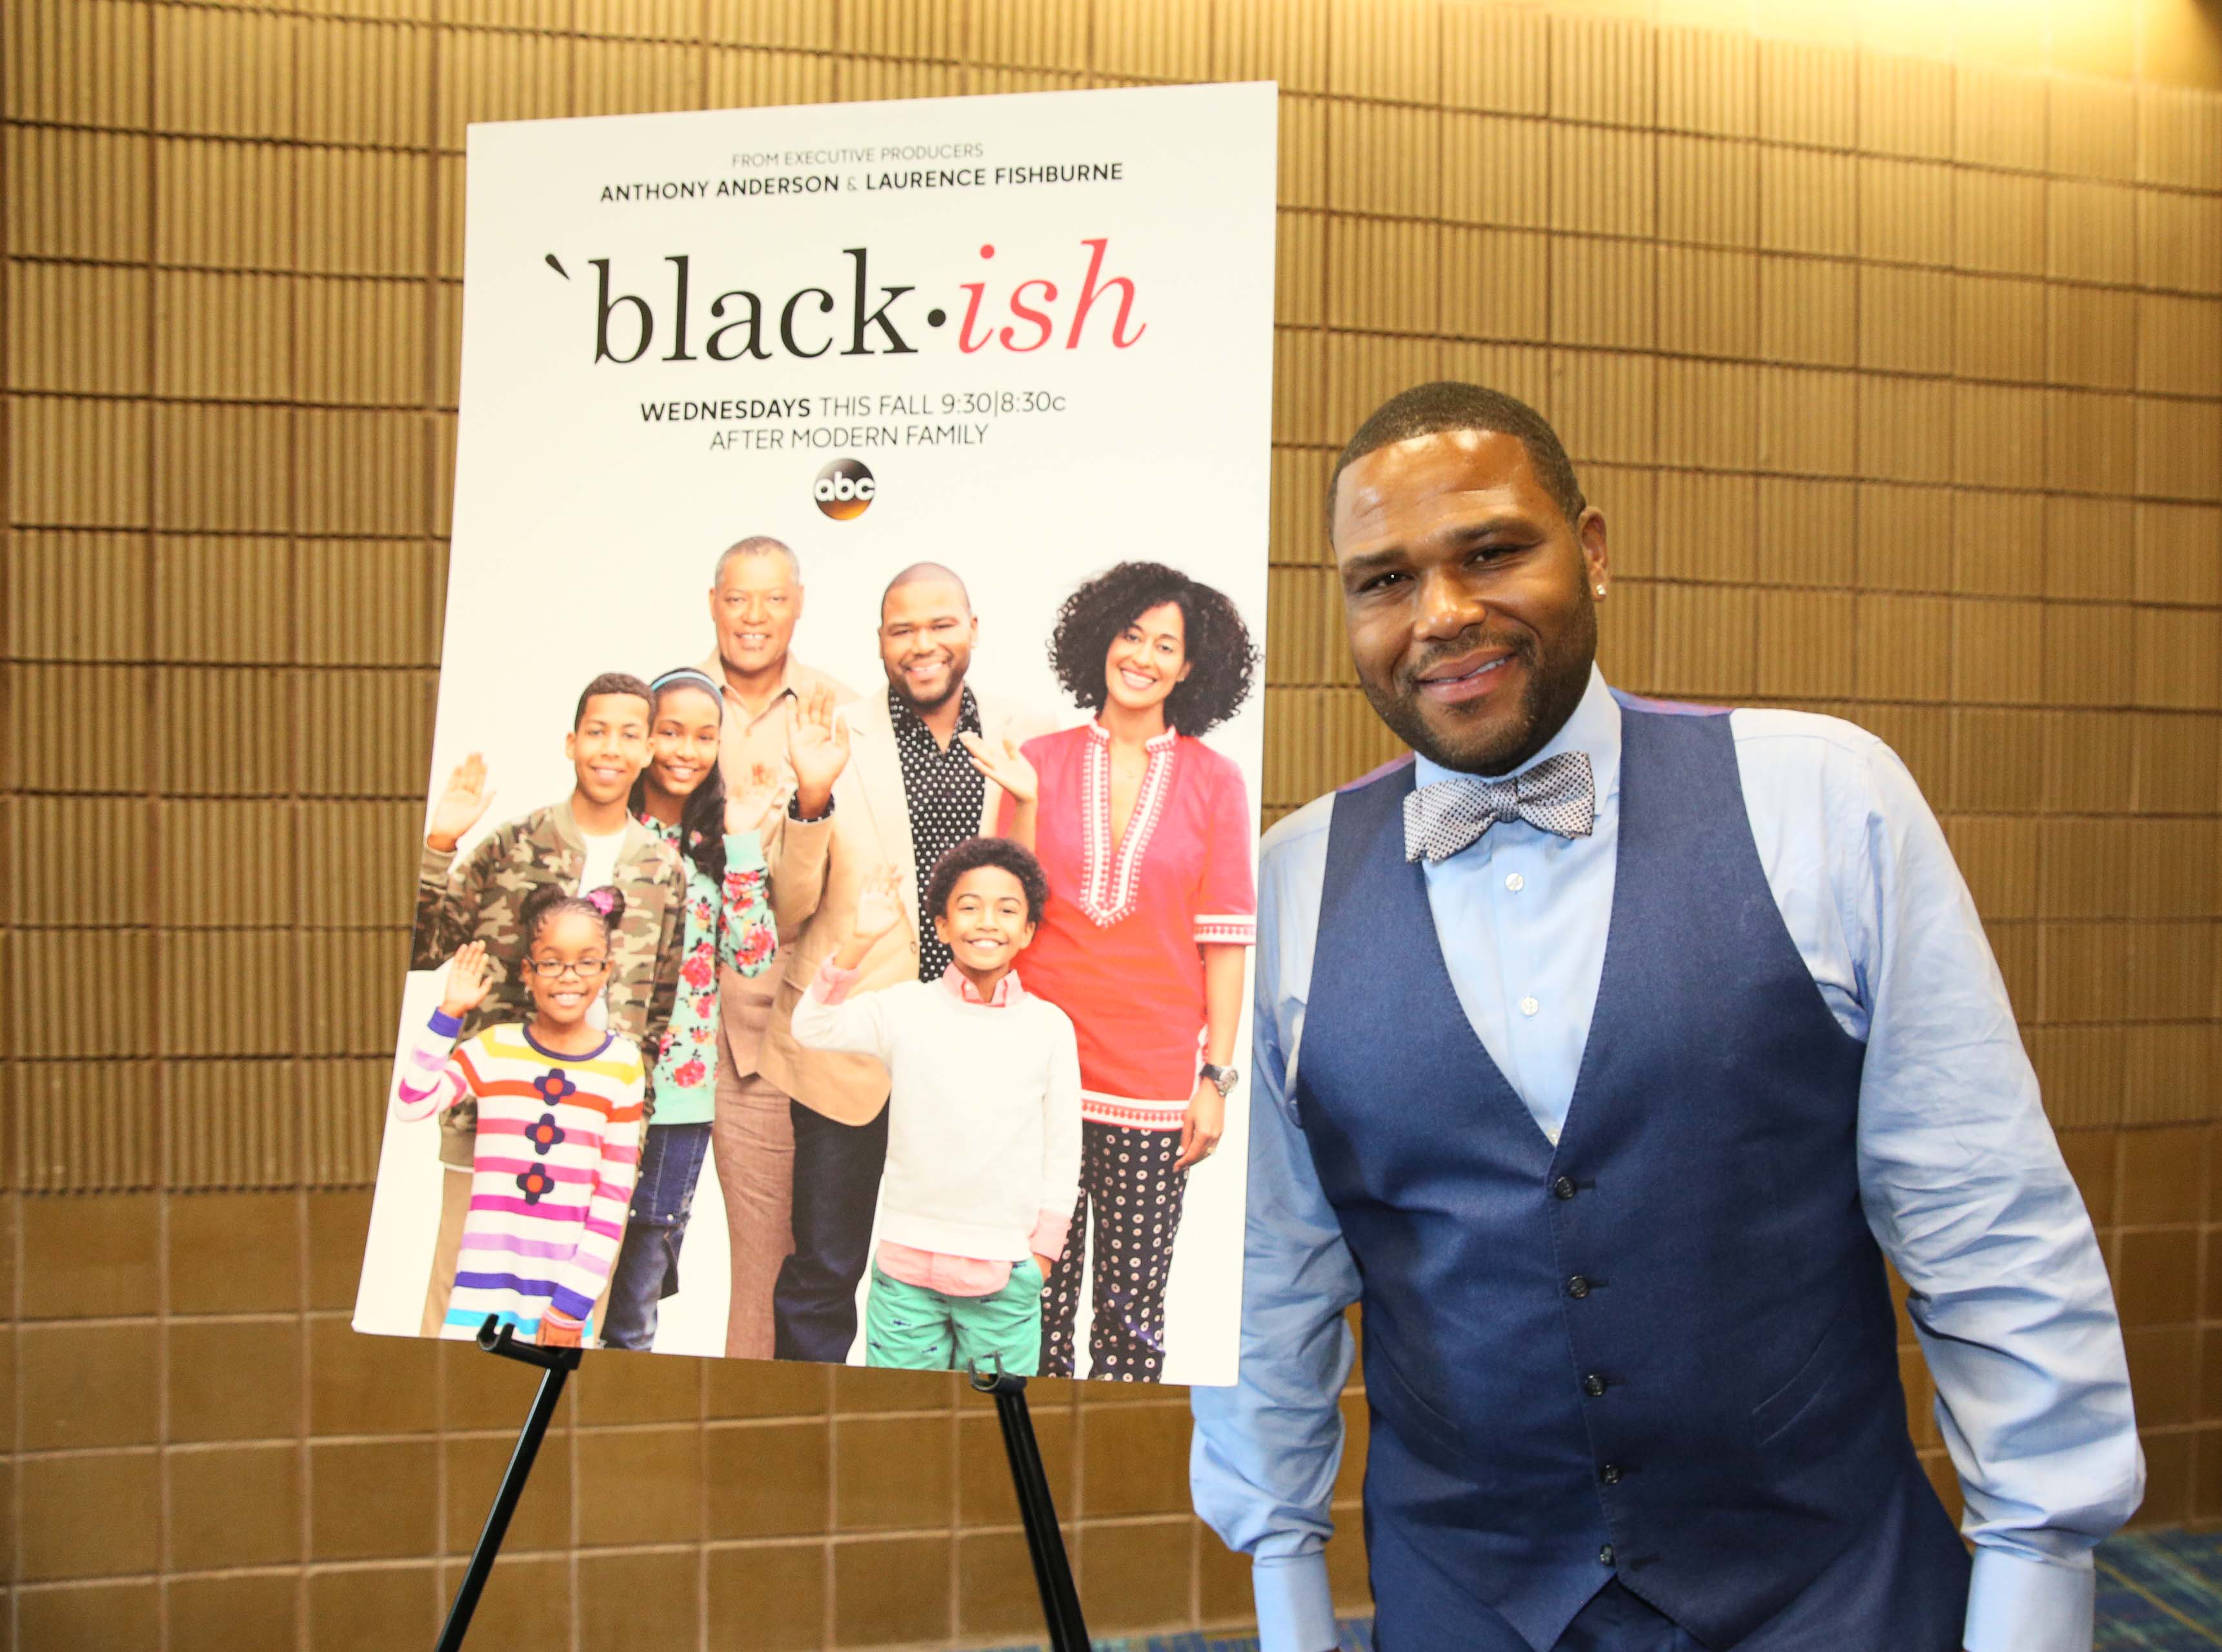 """black-ish""-Screening-ANTHONY-ANDERSON-EMF-2014-IMGM0553-CME-3000"